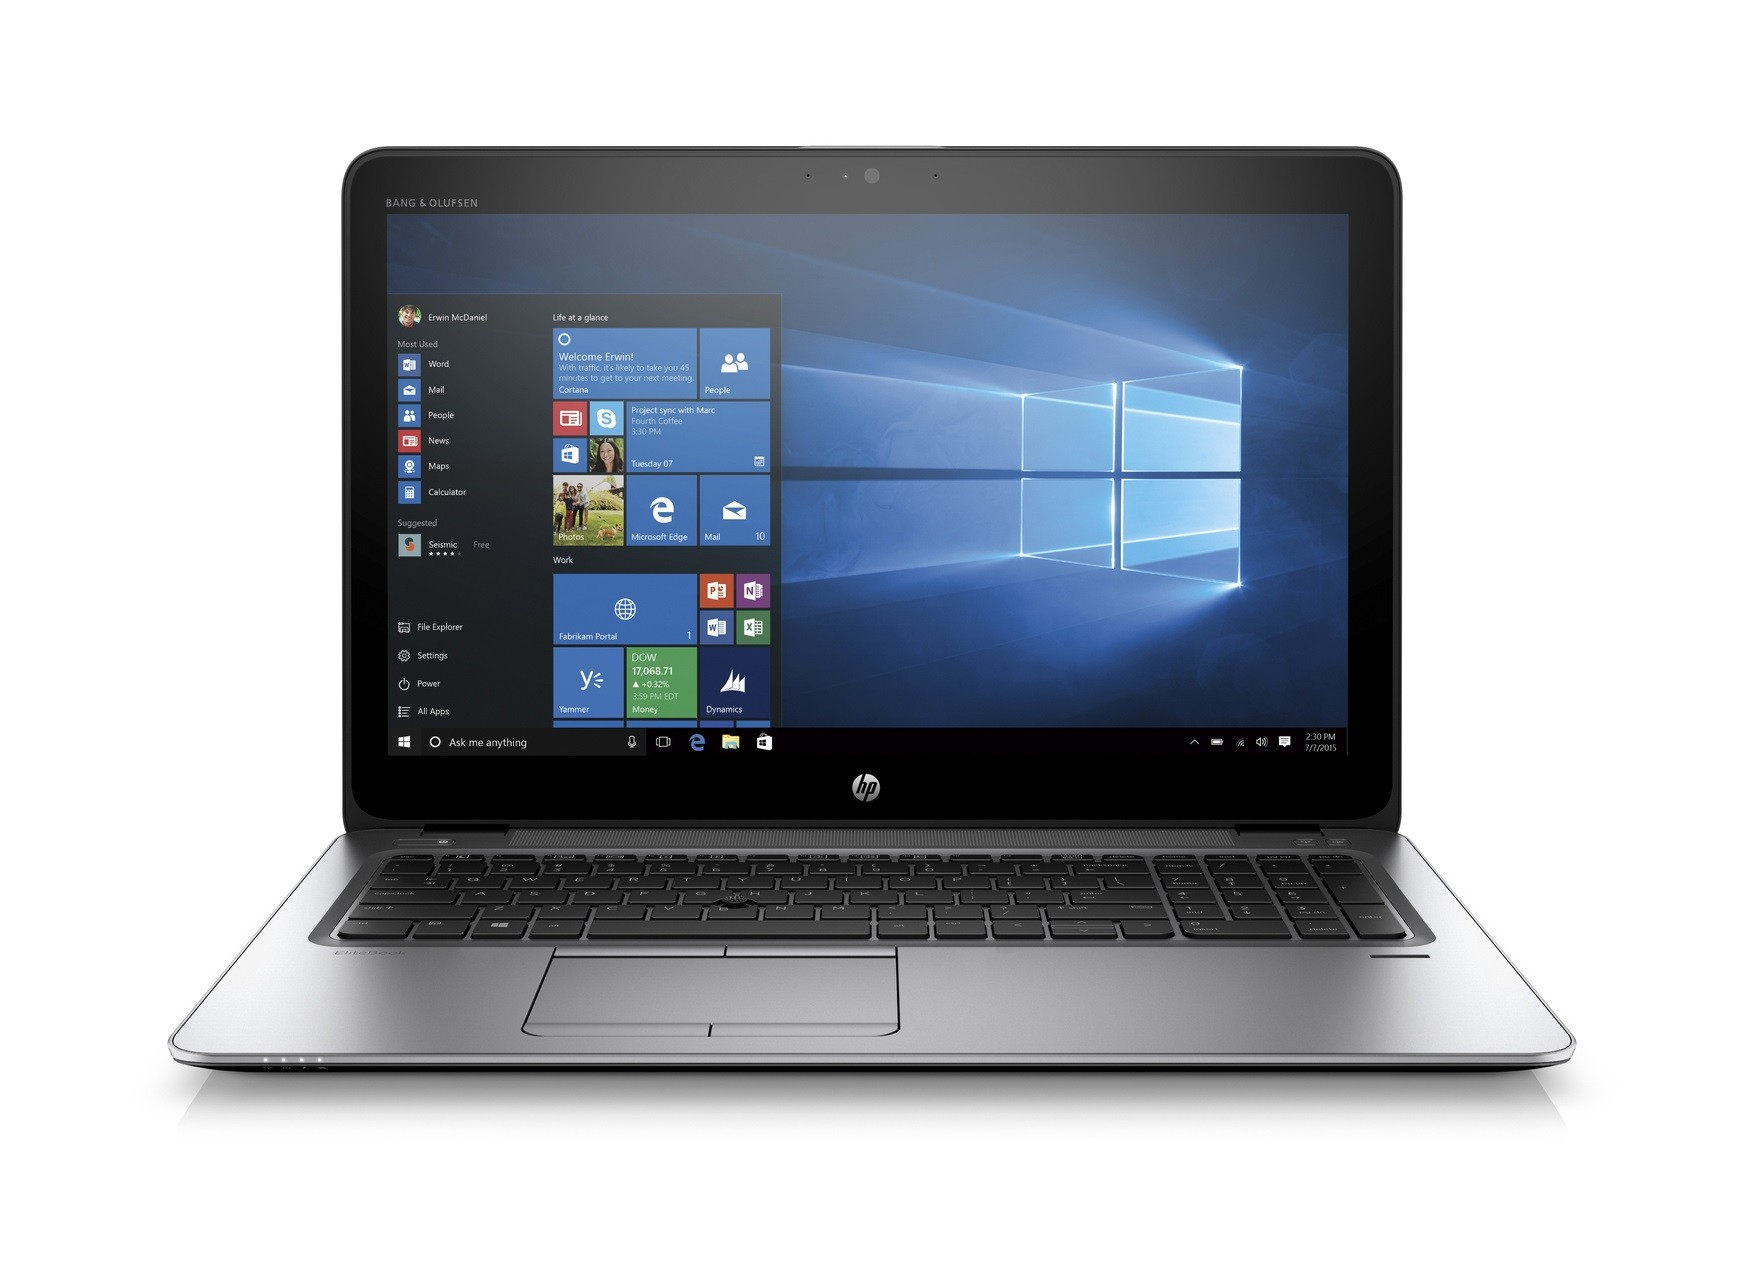 HP-EB-850-G3-LAP-I5-256GB-HP EliteBook 850 G3 Refurbished Laptop 15-inch 256 GB SSD 8 GB RAM Core i5 Windows 10 Professional-image